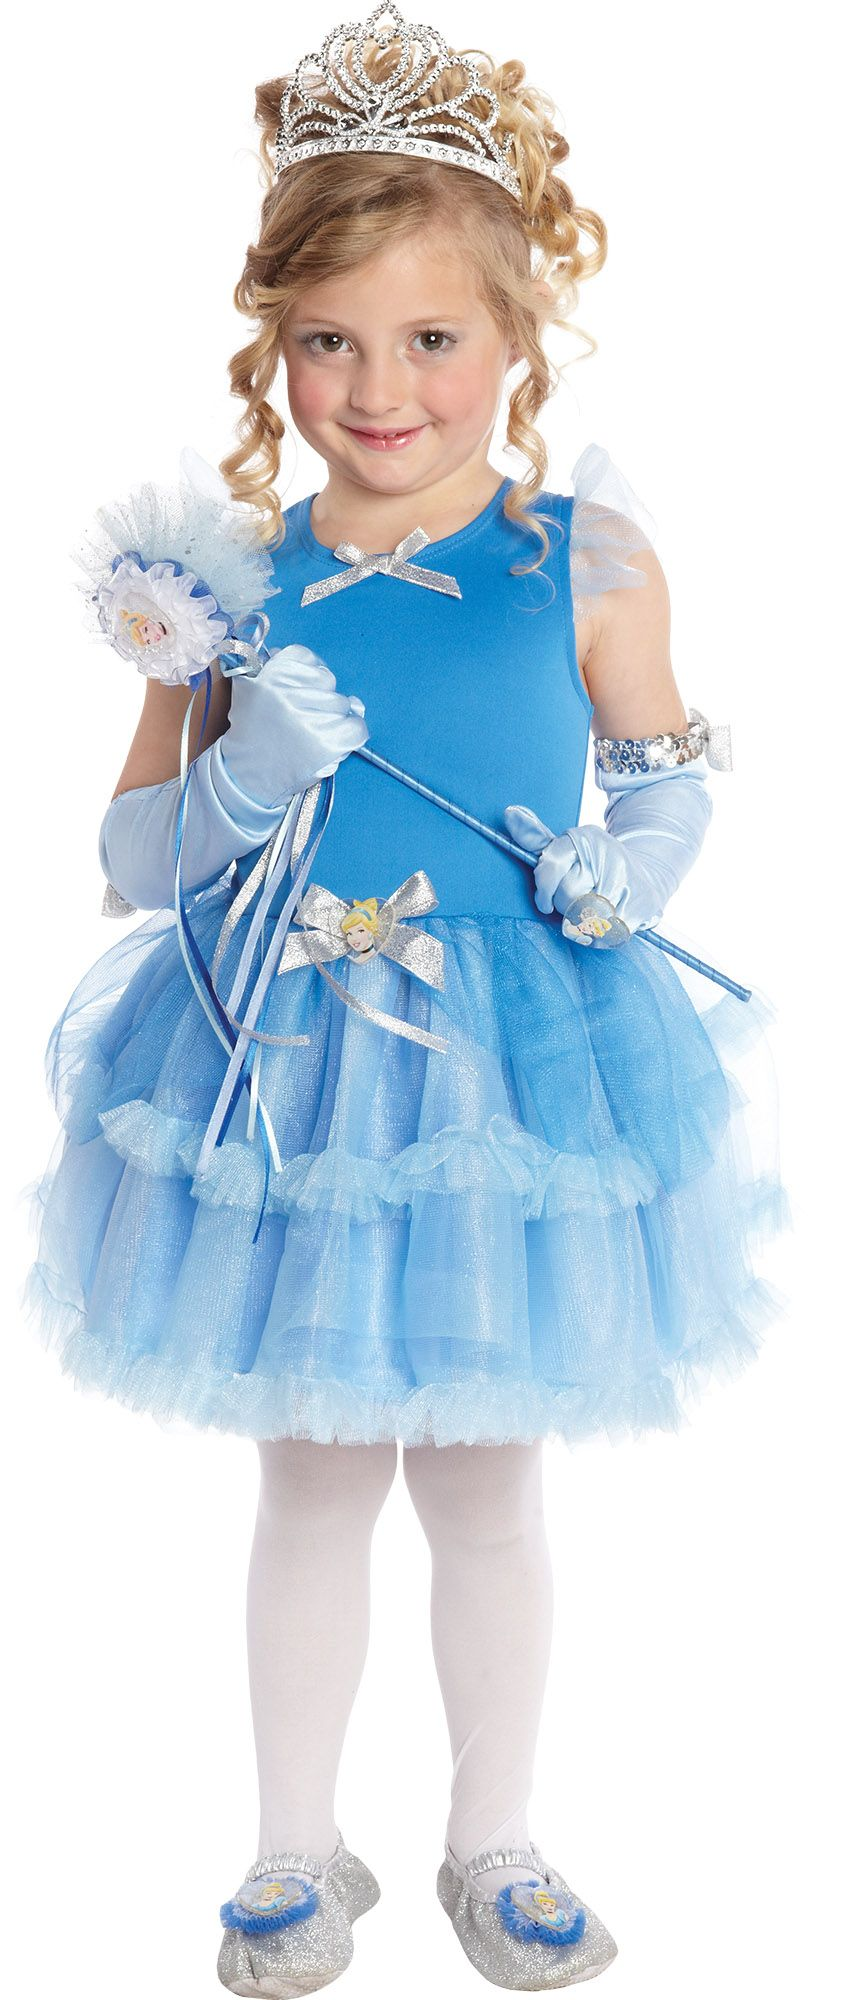 Create Your Own Girls\' Cinderella Costume Accessories | Party City